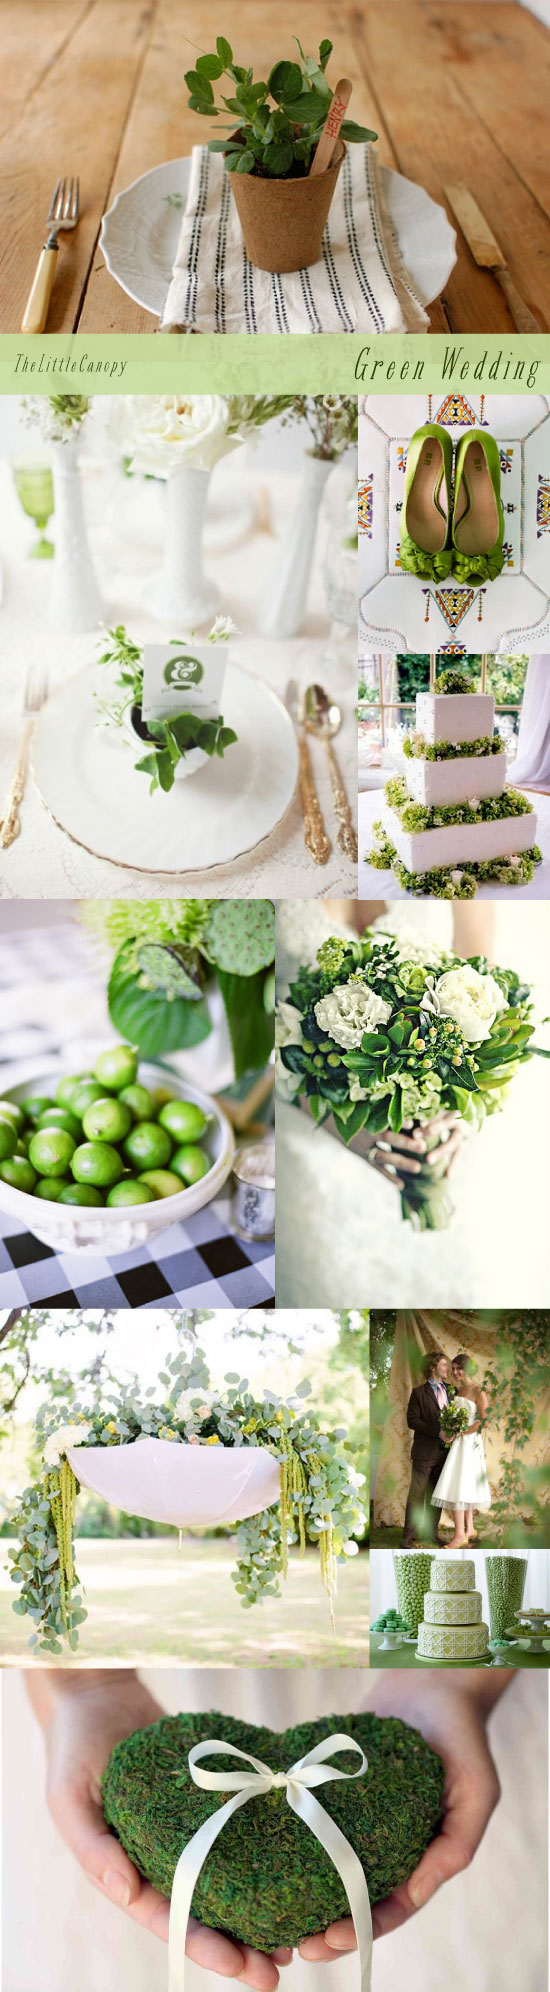 Green Natural Wedding Inspiration Board